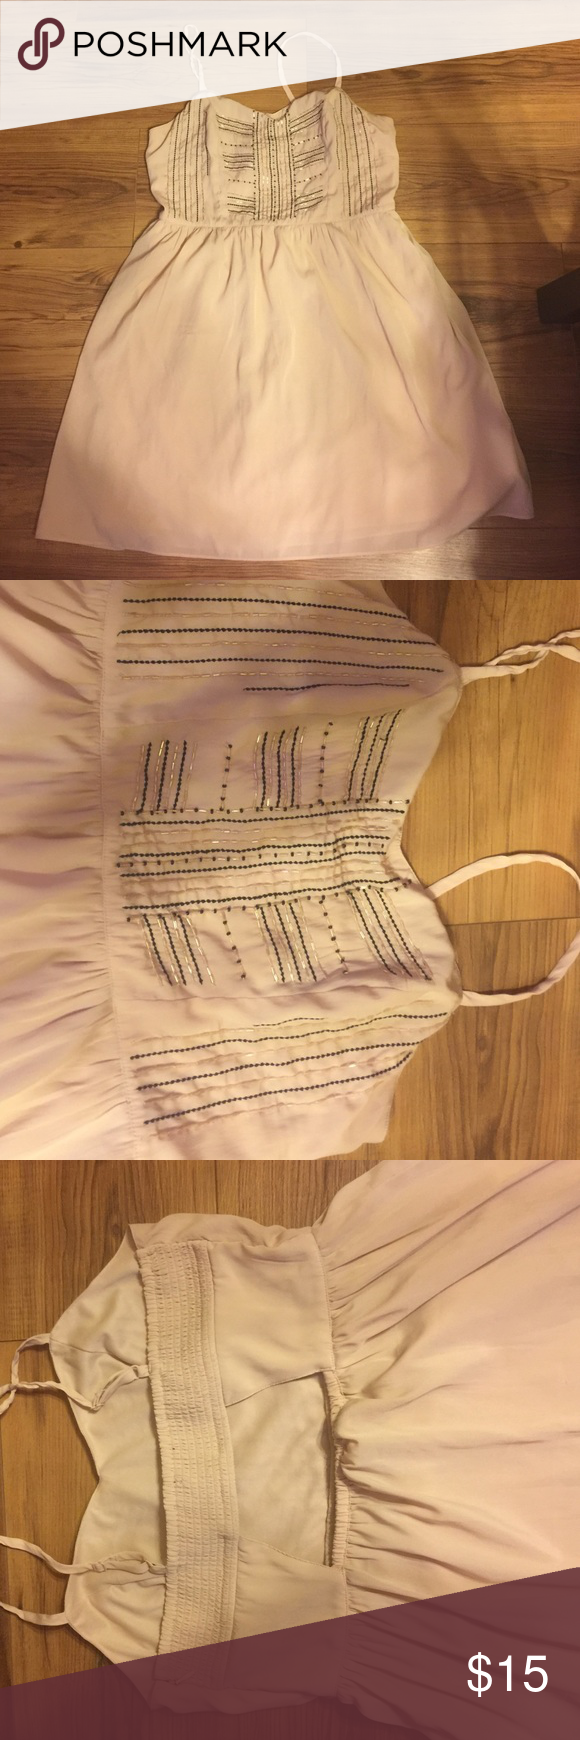 American eagle dress. Peach/nude type colored cute dress. It has a peek a boo on the back with a stretchy top. It's really cute just not for me. American Eagle Outfitters Dresses Mini